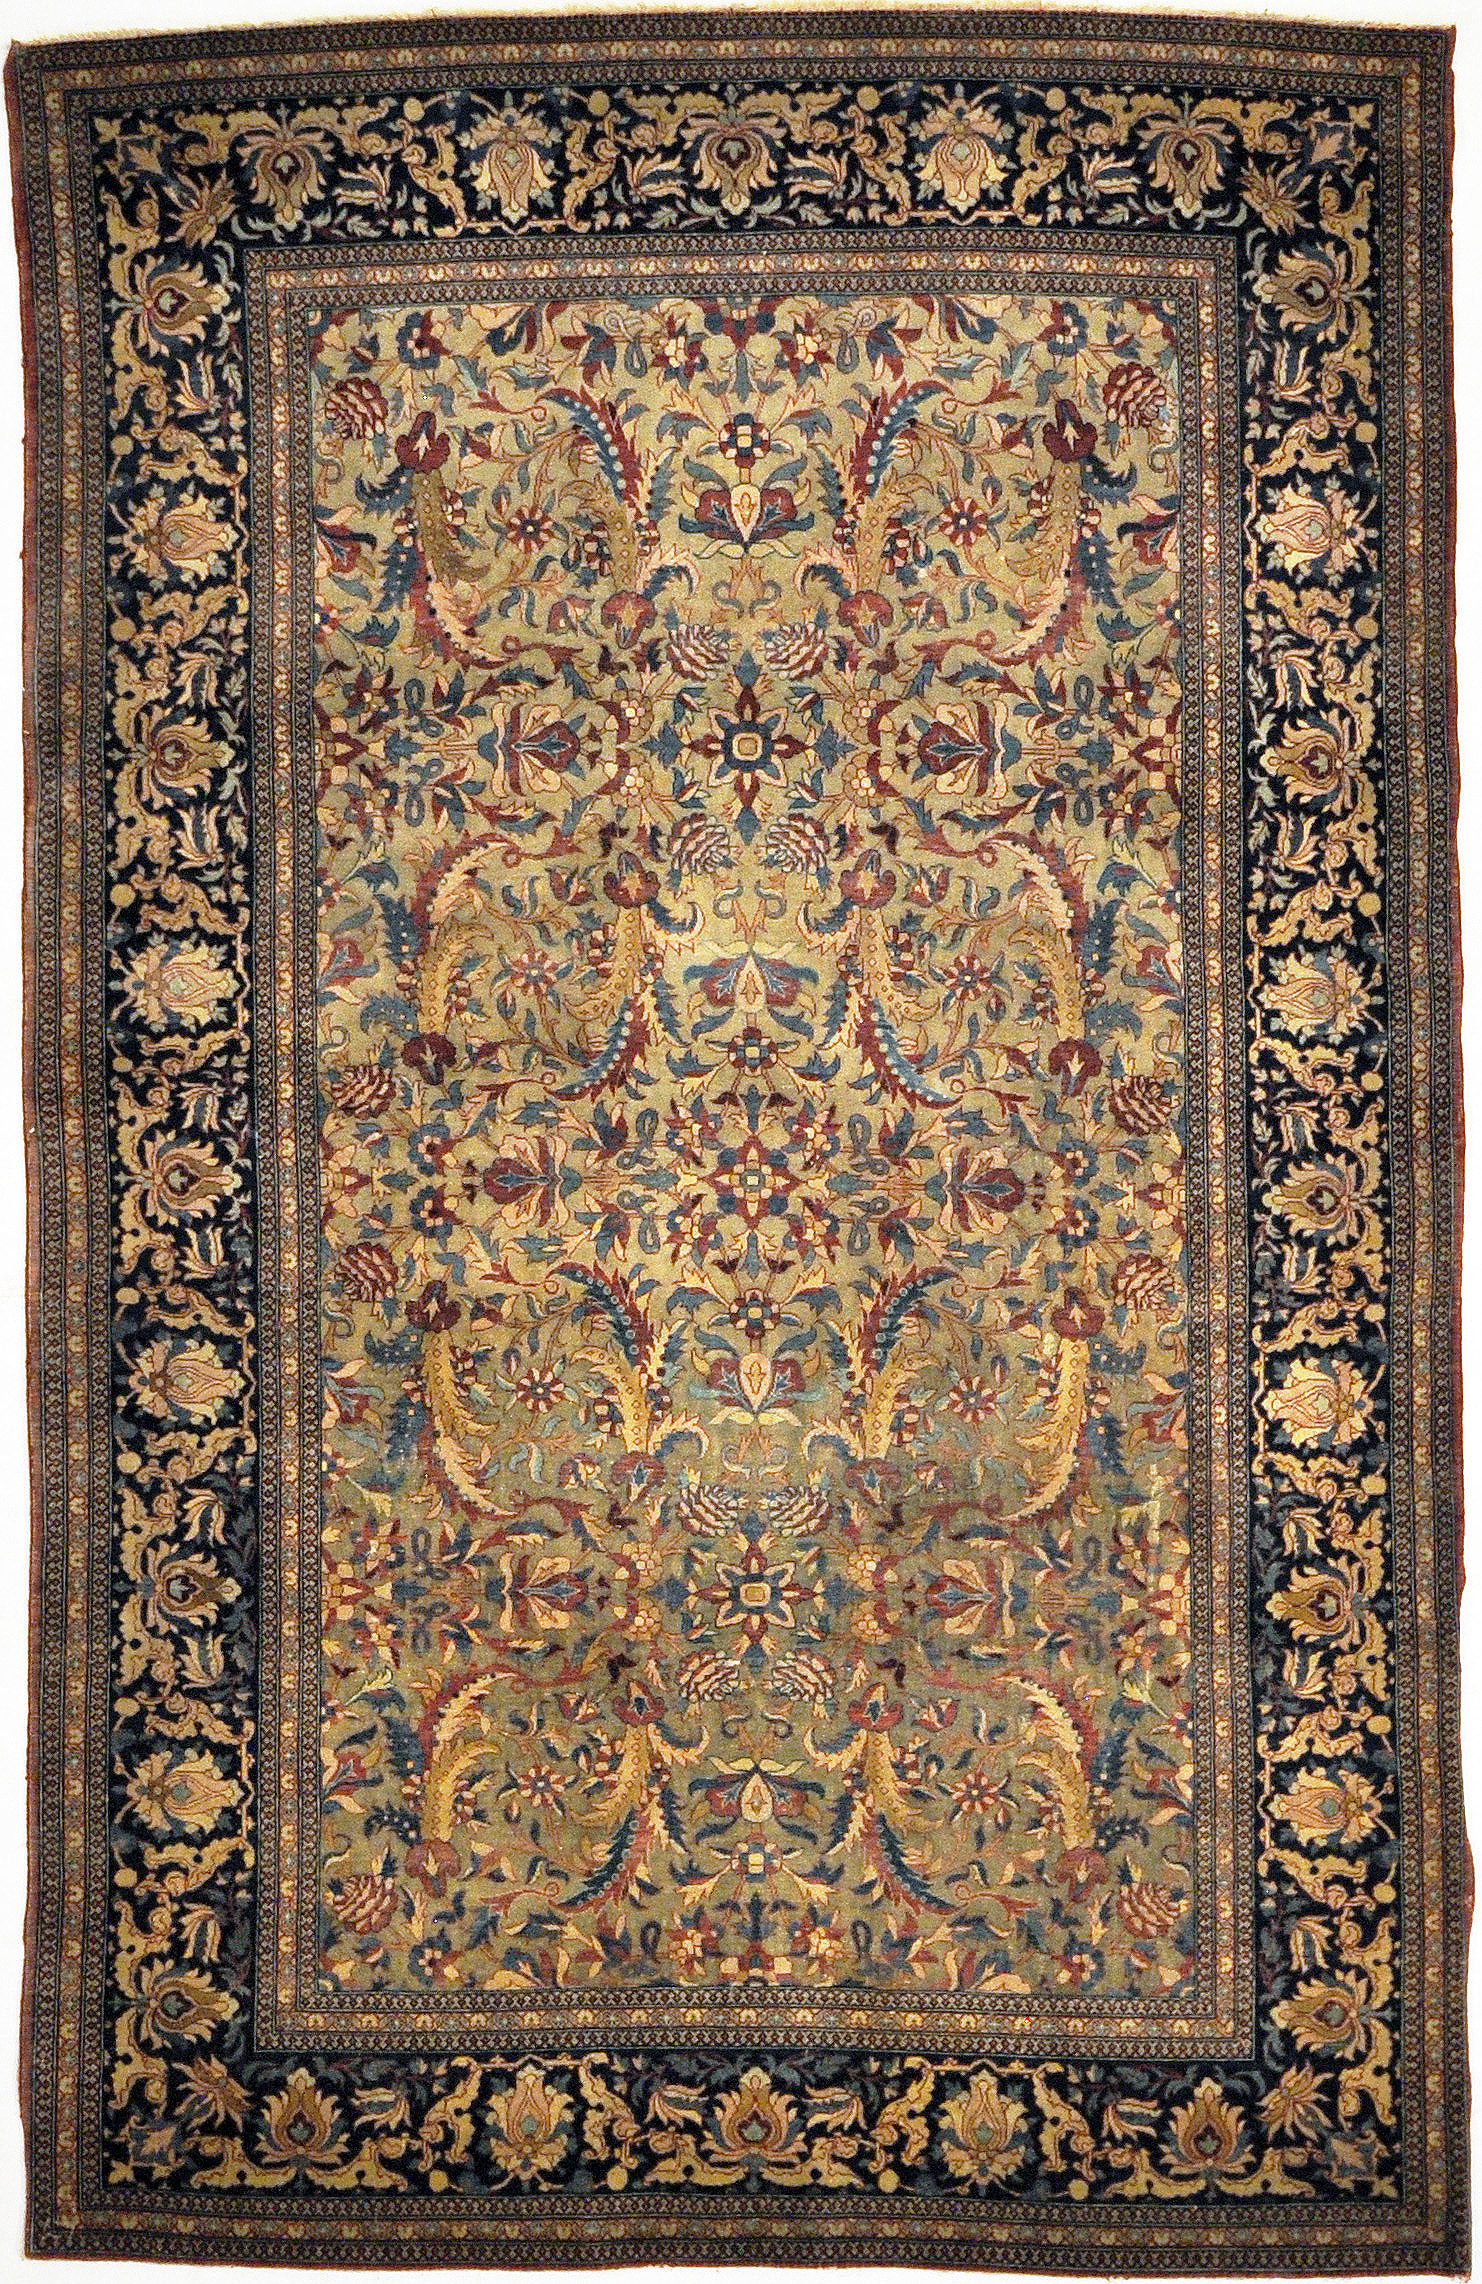 Antique Mohtashan Kashan Rug and More Santa Barbara Design Center Persian Carpet Authentic Woven Art Fine Knotted Manchester Wool